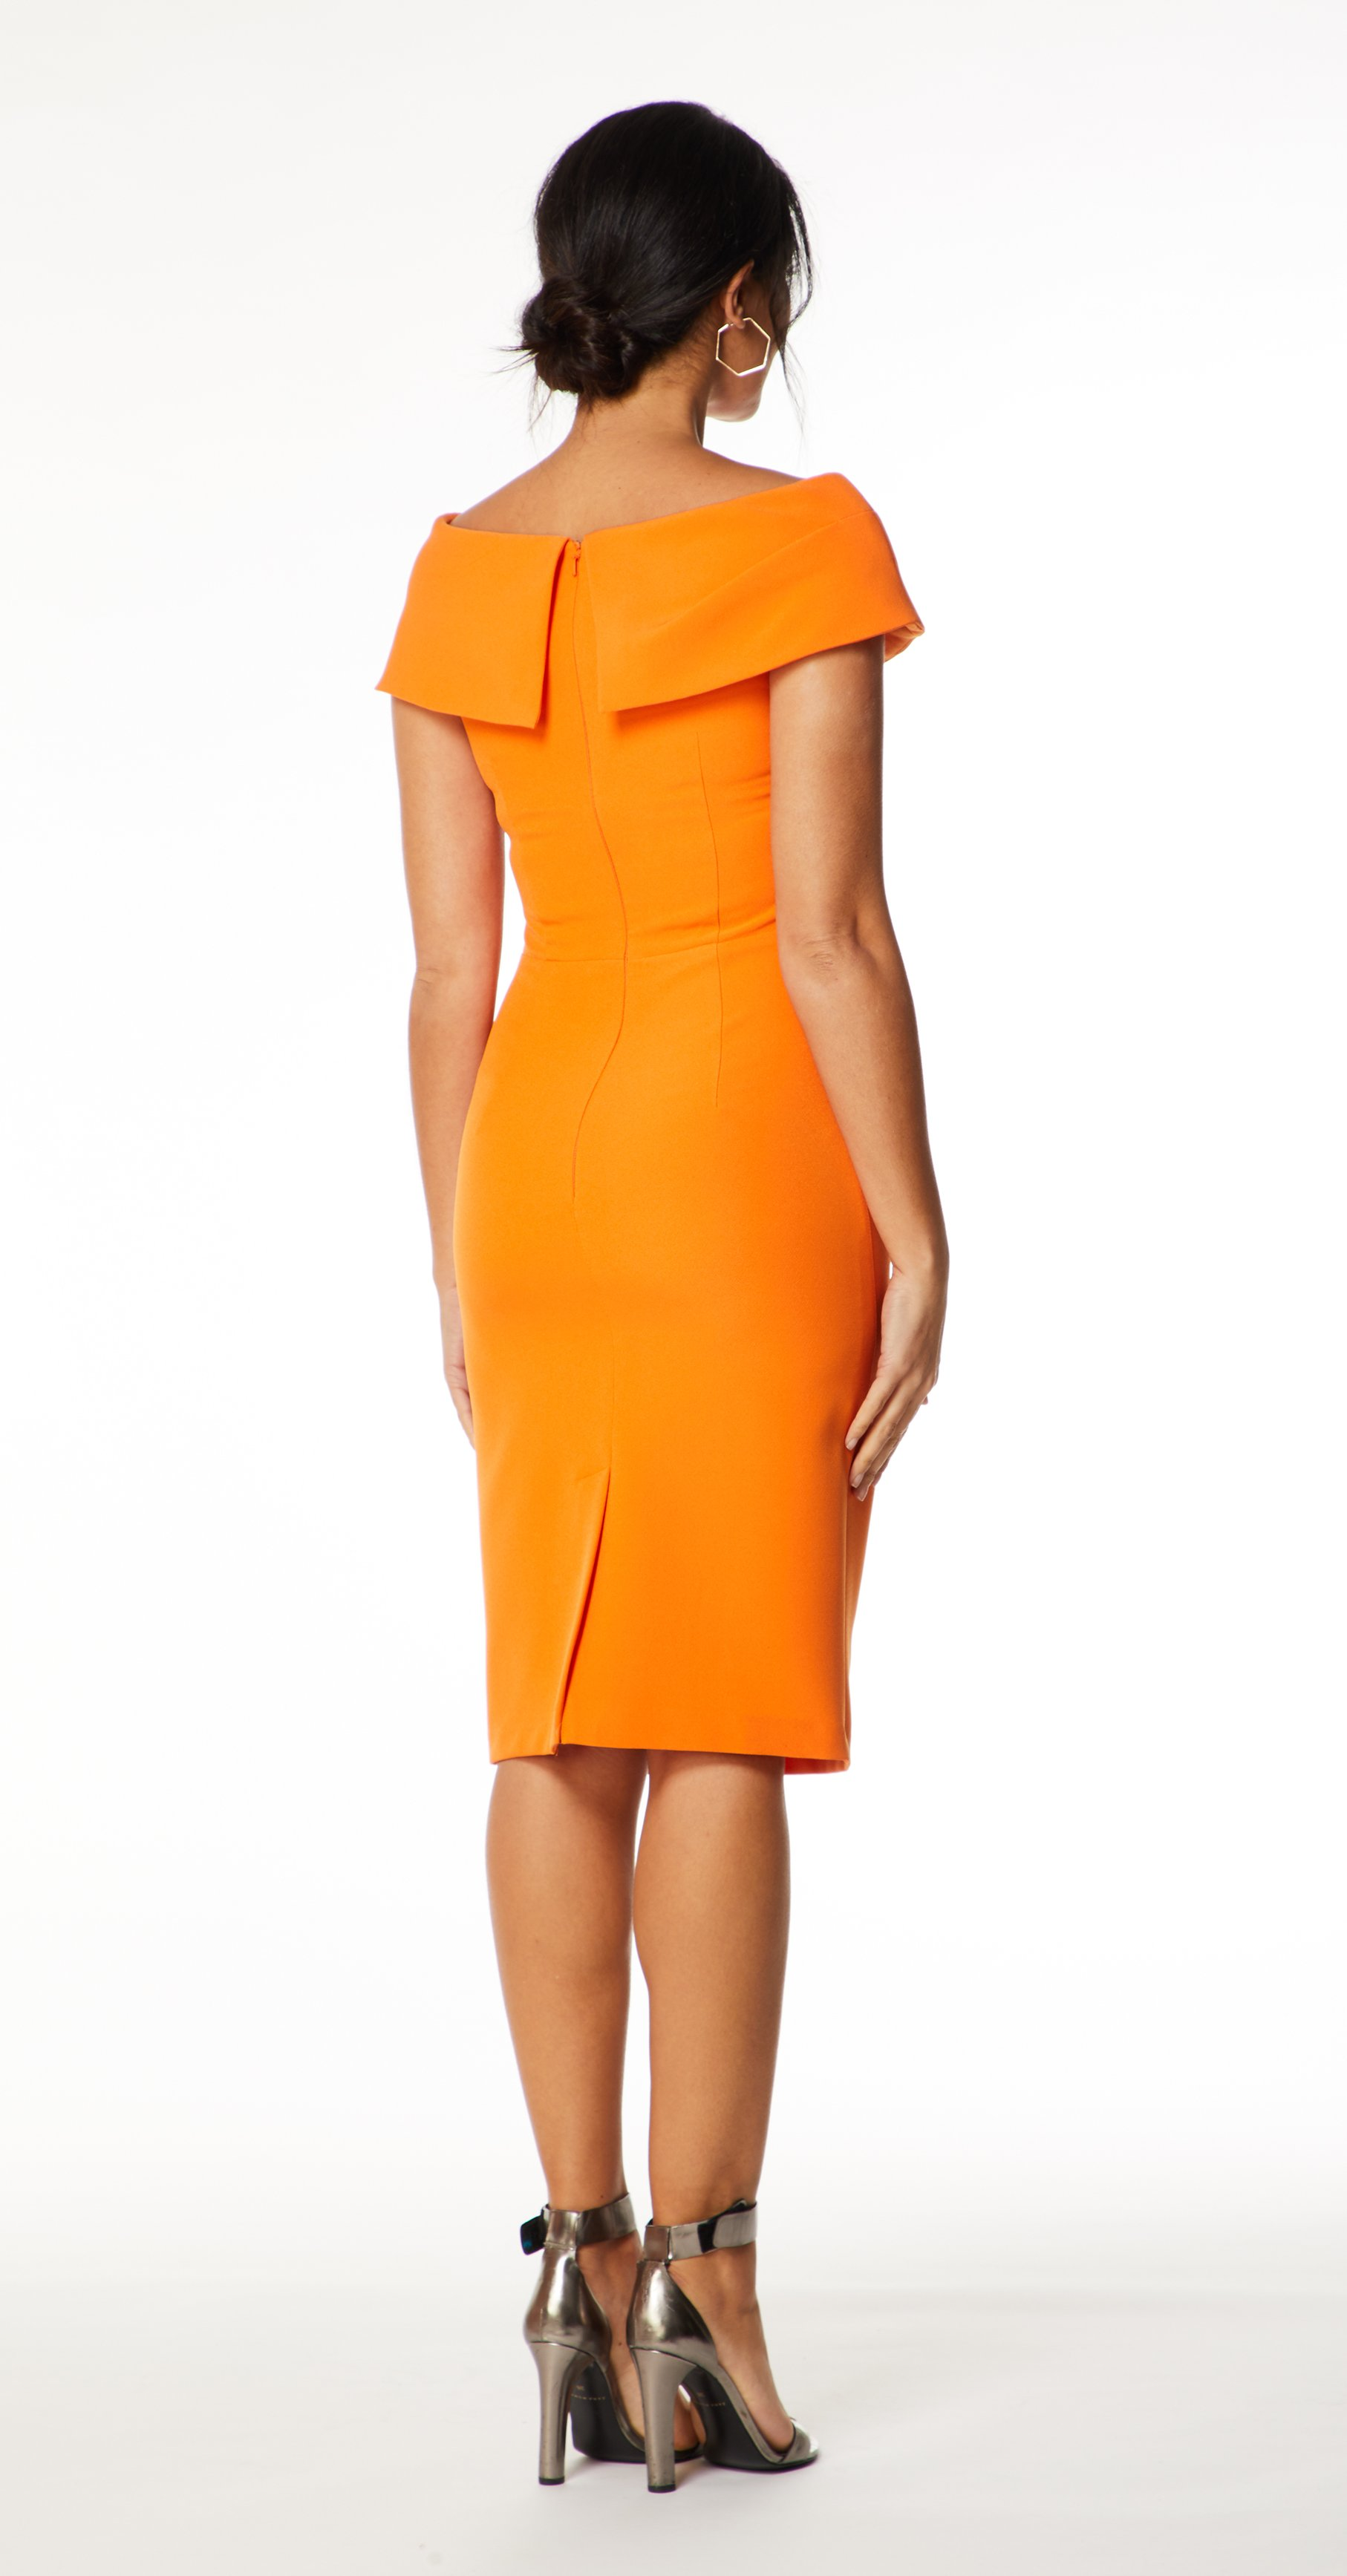 Mellaris Olympia Dress - Orange